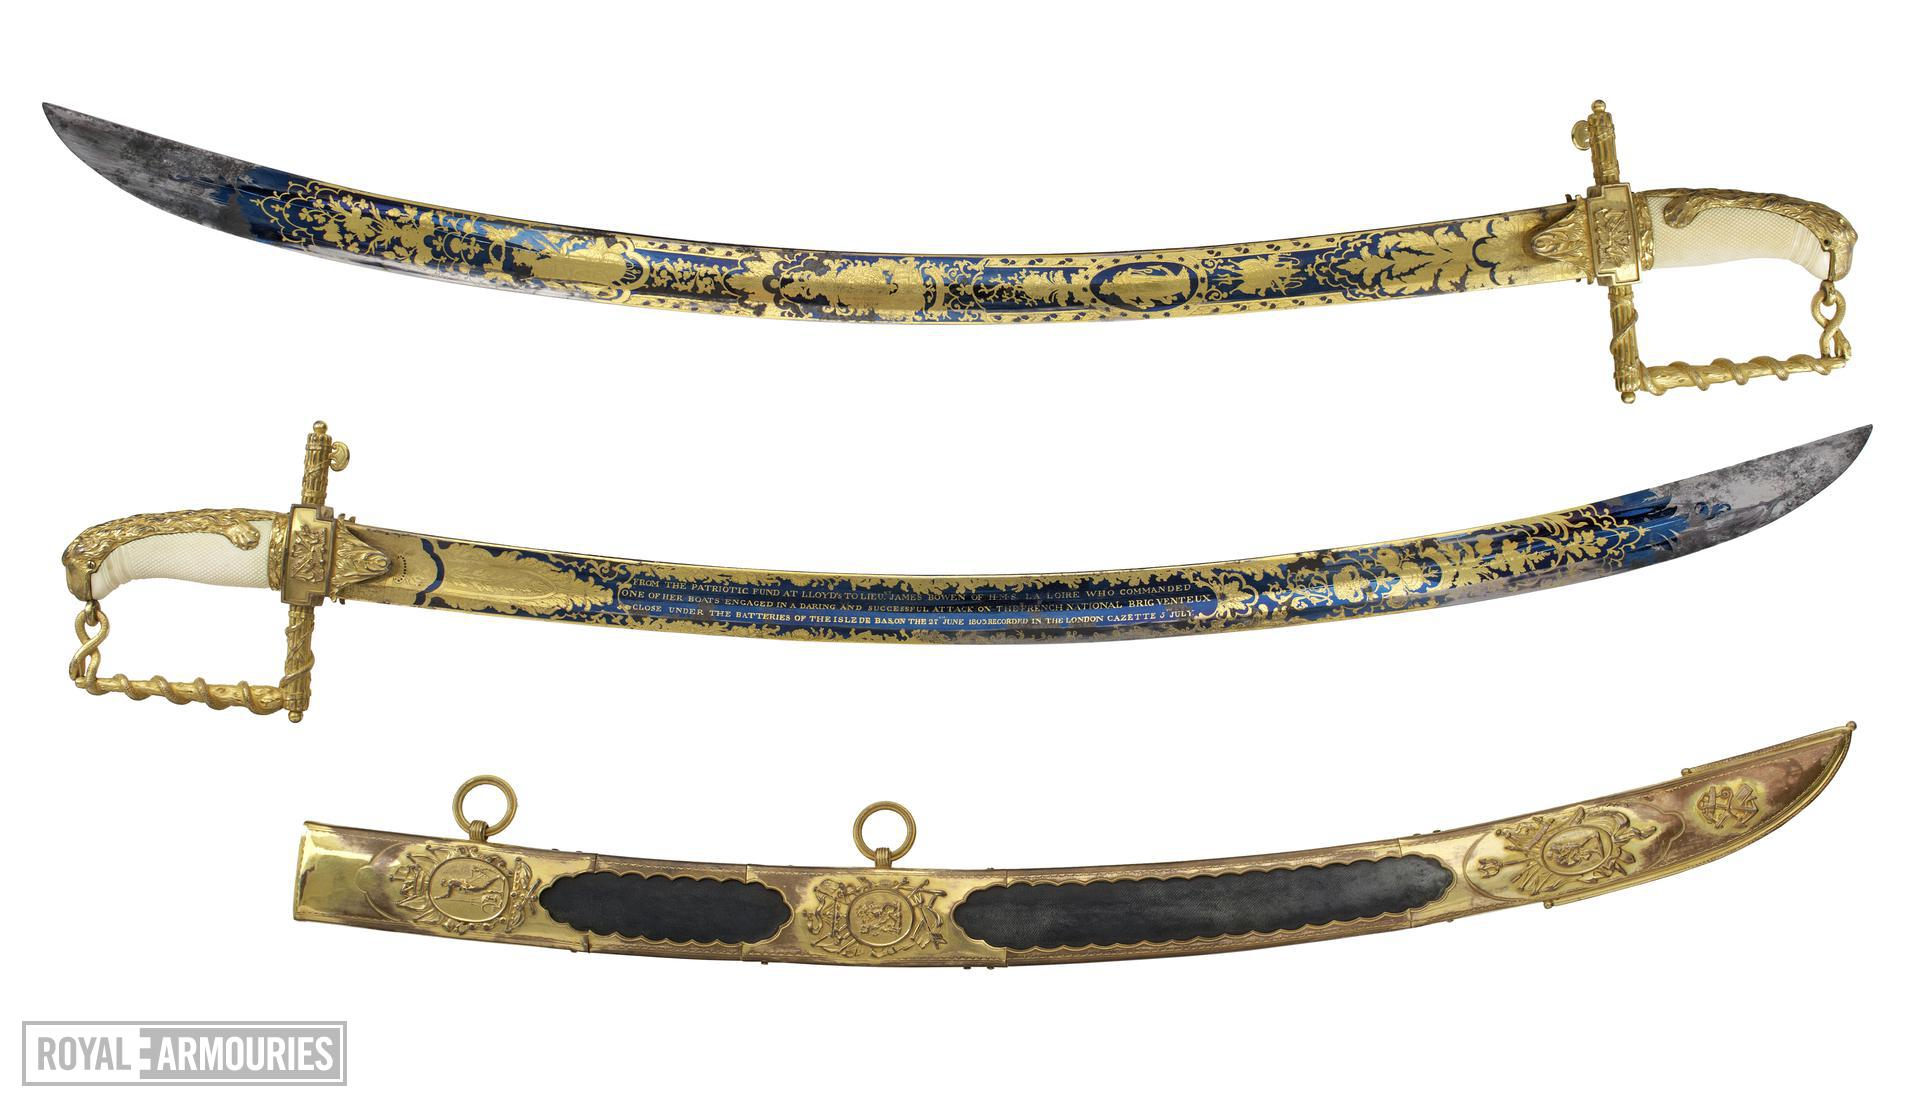 Presentation sword and scabbard, English, about 1800-1803 (IX.2565 A-D) Presented to Lt James Bowen by the Lloyd's Patriotic Fund in 1803. Possibly by R. Teed. British, London. - both sides of blade shown.